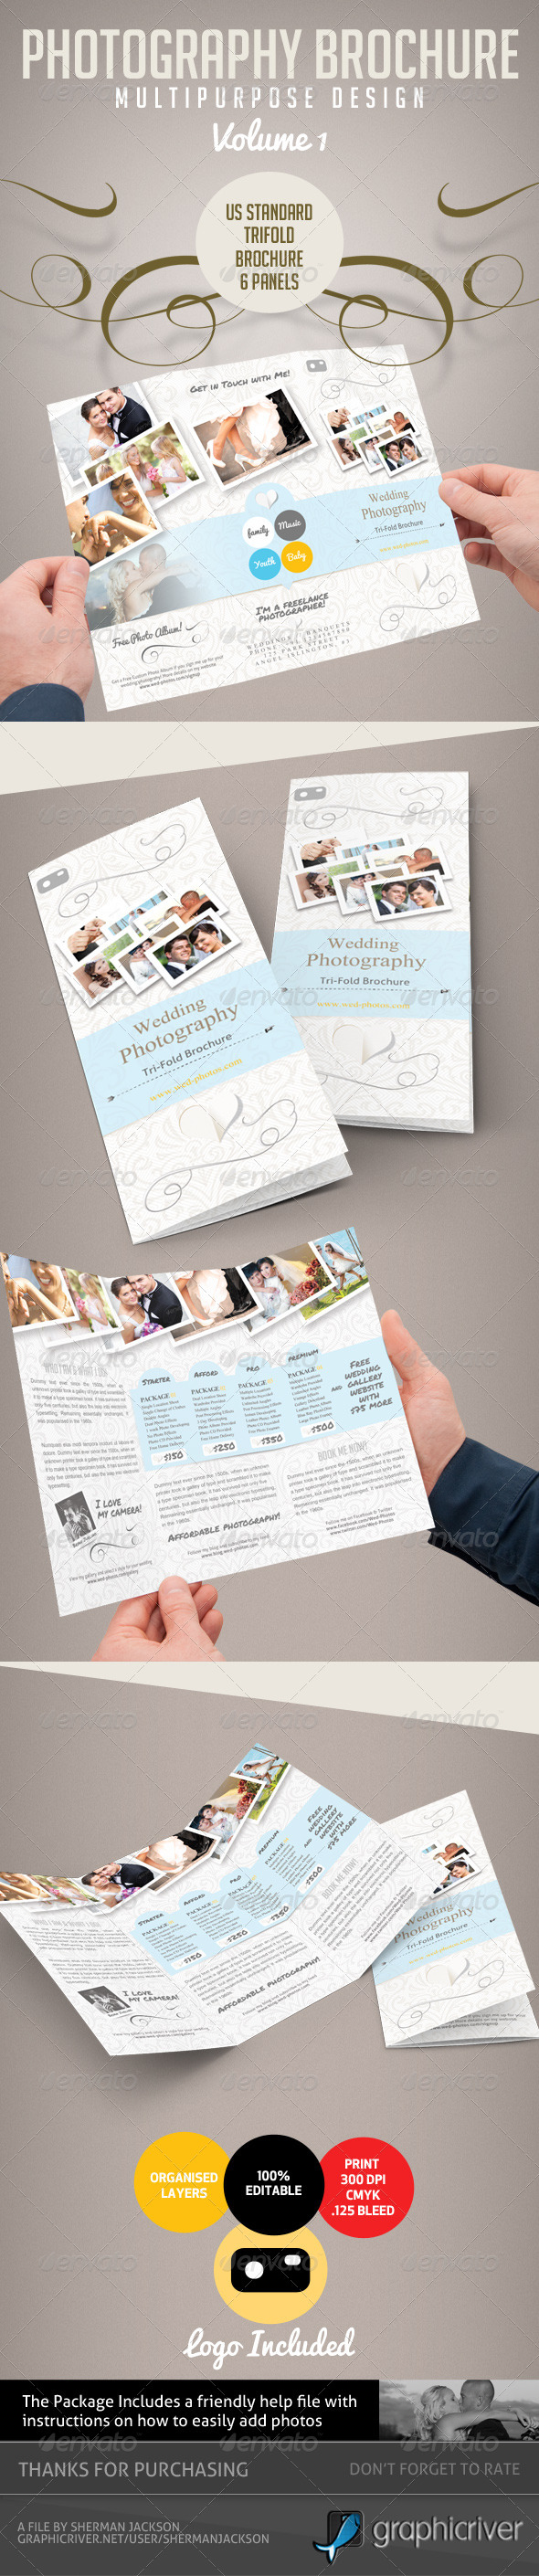 GraphicRiver Pro Photography Trifold Brochure Volume 1 4238647